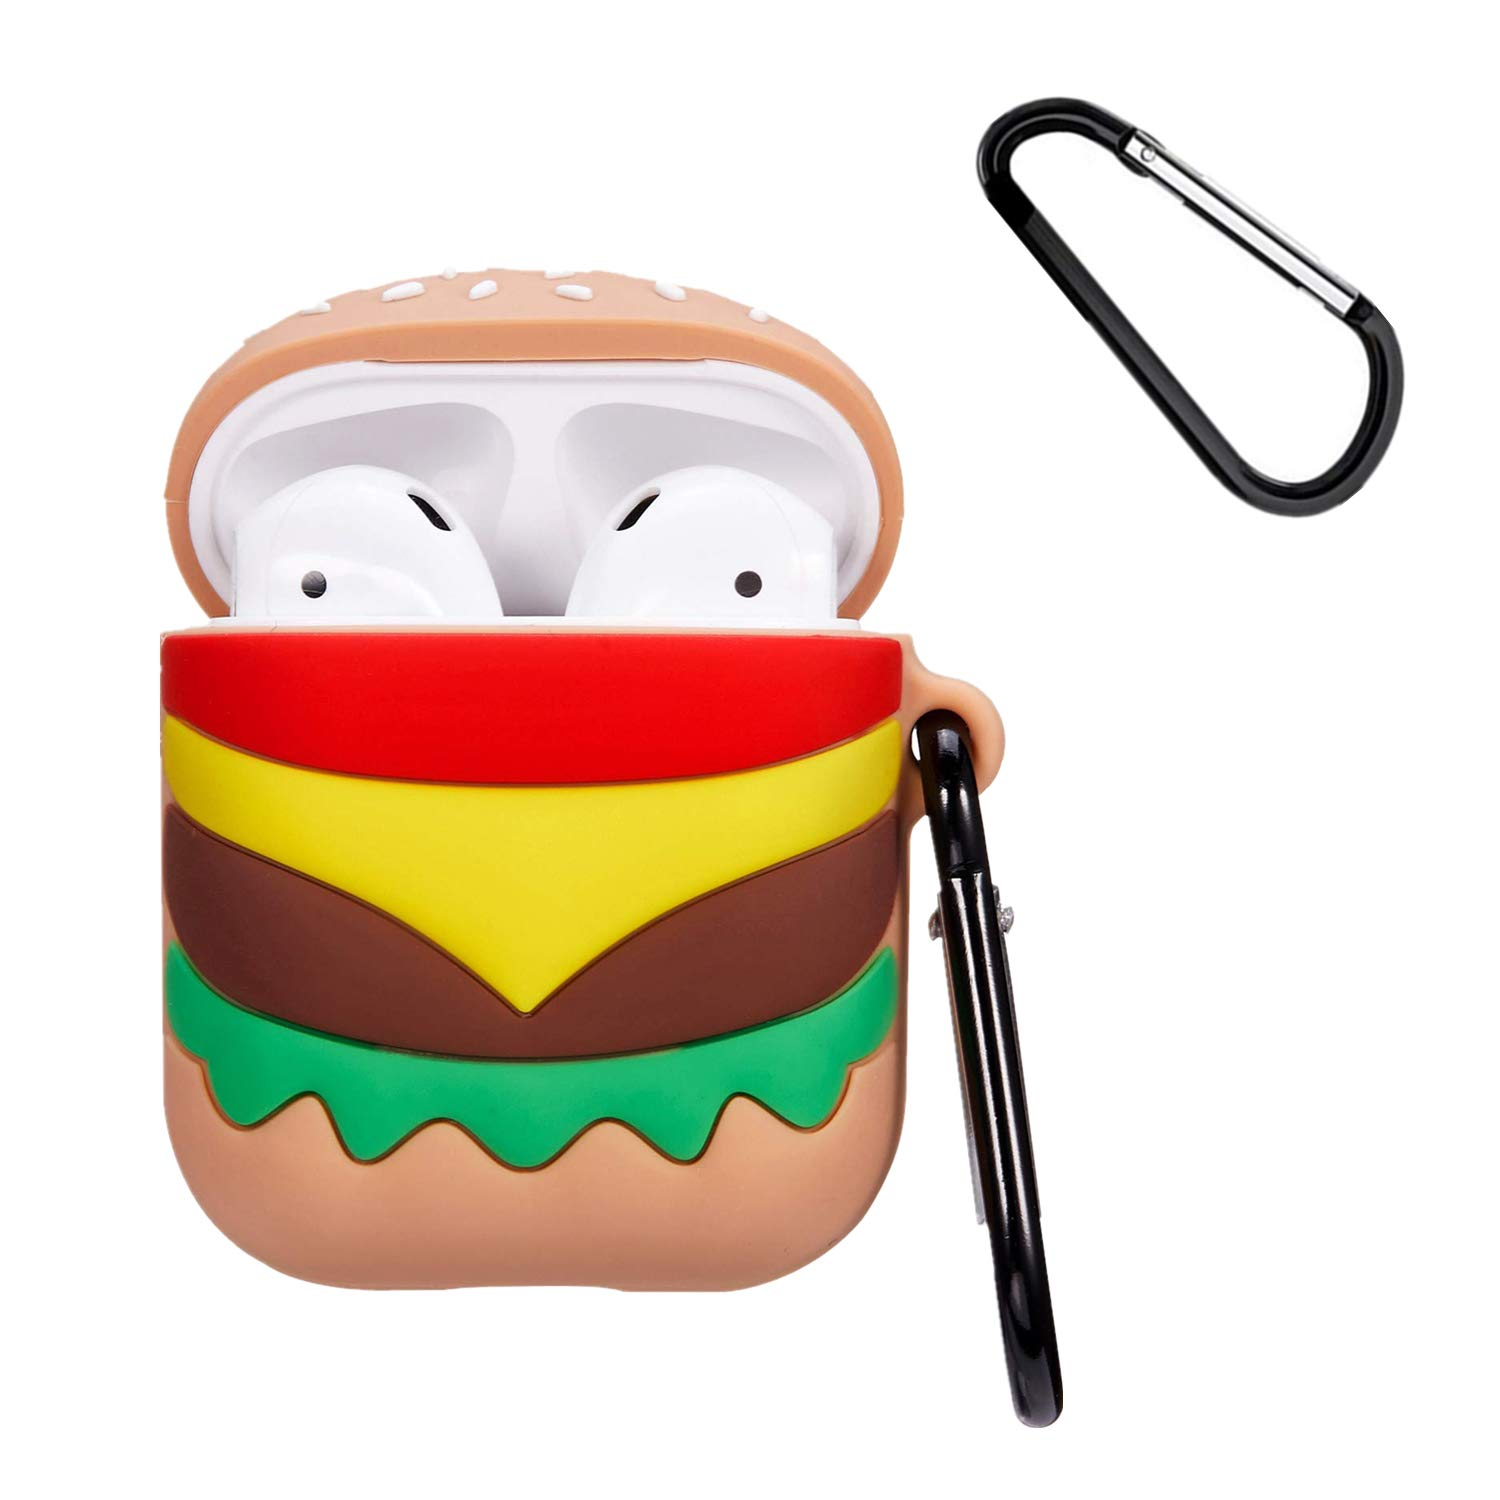 3D Mike Mulafnxal for Airpods 1/&2 Case,Cute Funny Cartoon Animal Character Soft Silicone Airpod Cover,Kawaii Fun Cool Keychain Design Skin,Fashion Designer Cases for Girls Kids Teens Ladies Air pods